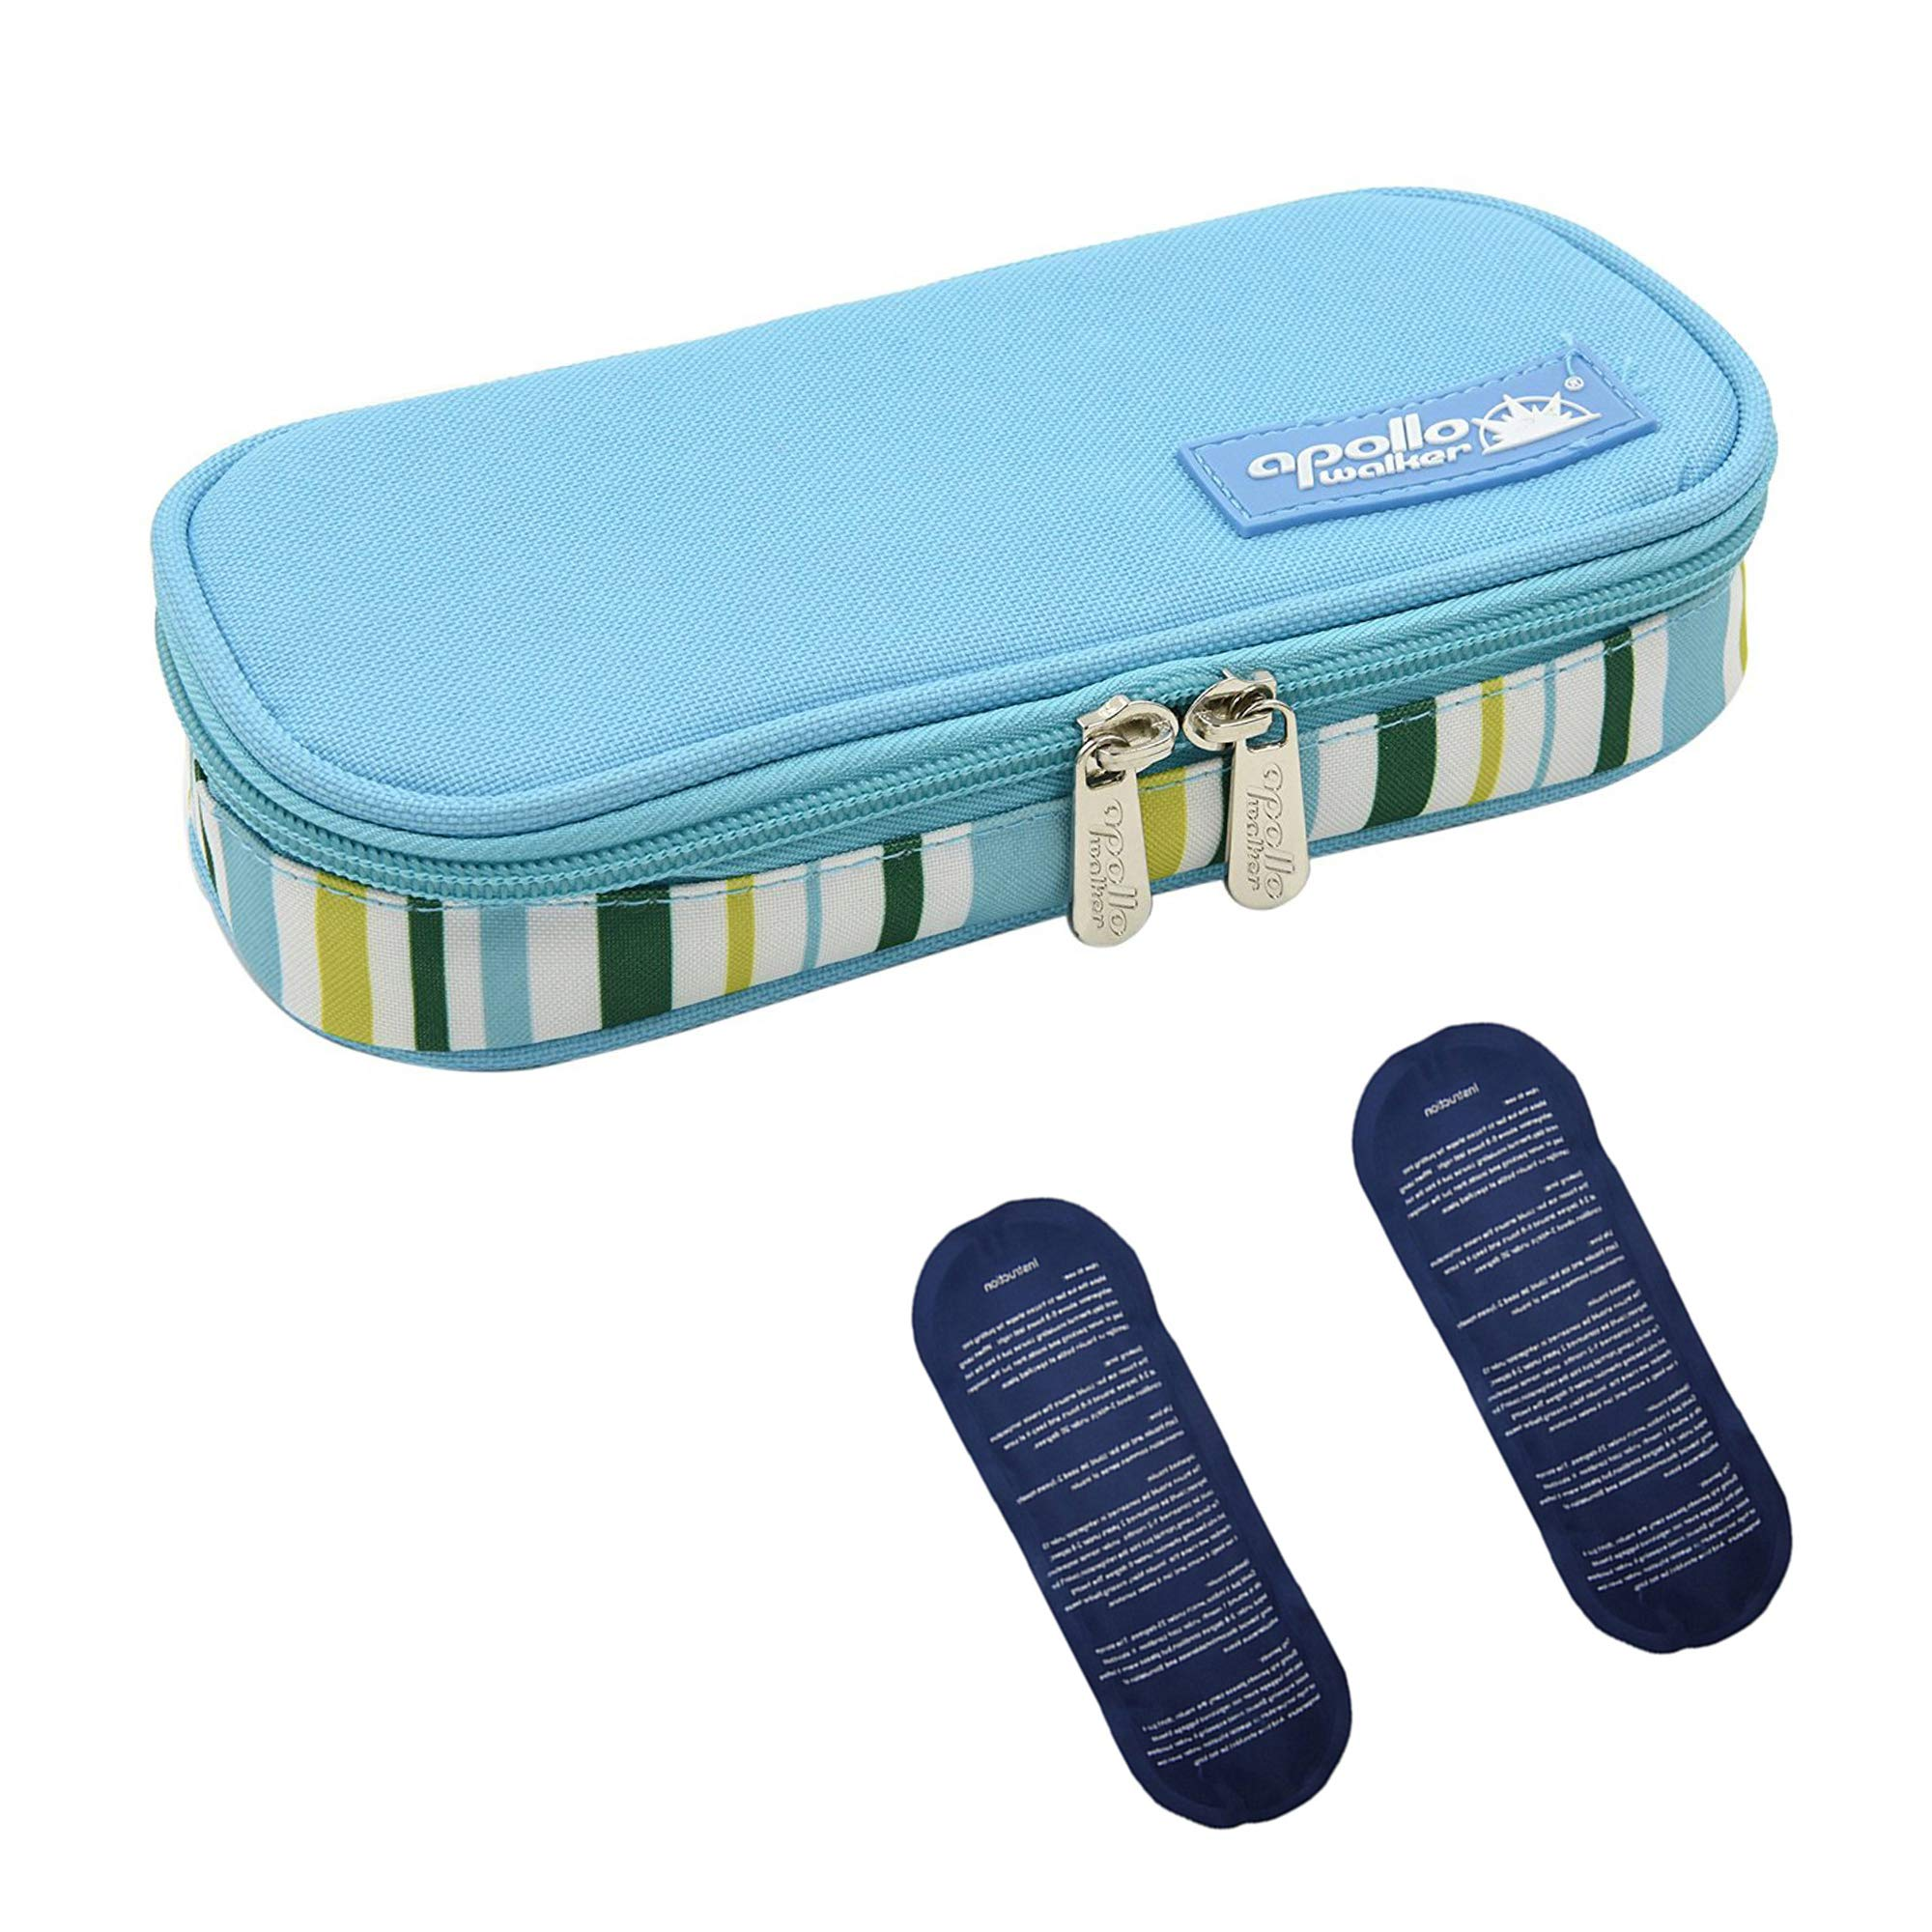 Apollo walker Insulin Cooler Travel Case Diabetic Medication Cooler with 2 Ice Pack and Insulation Liner(Light Blue)